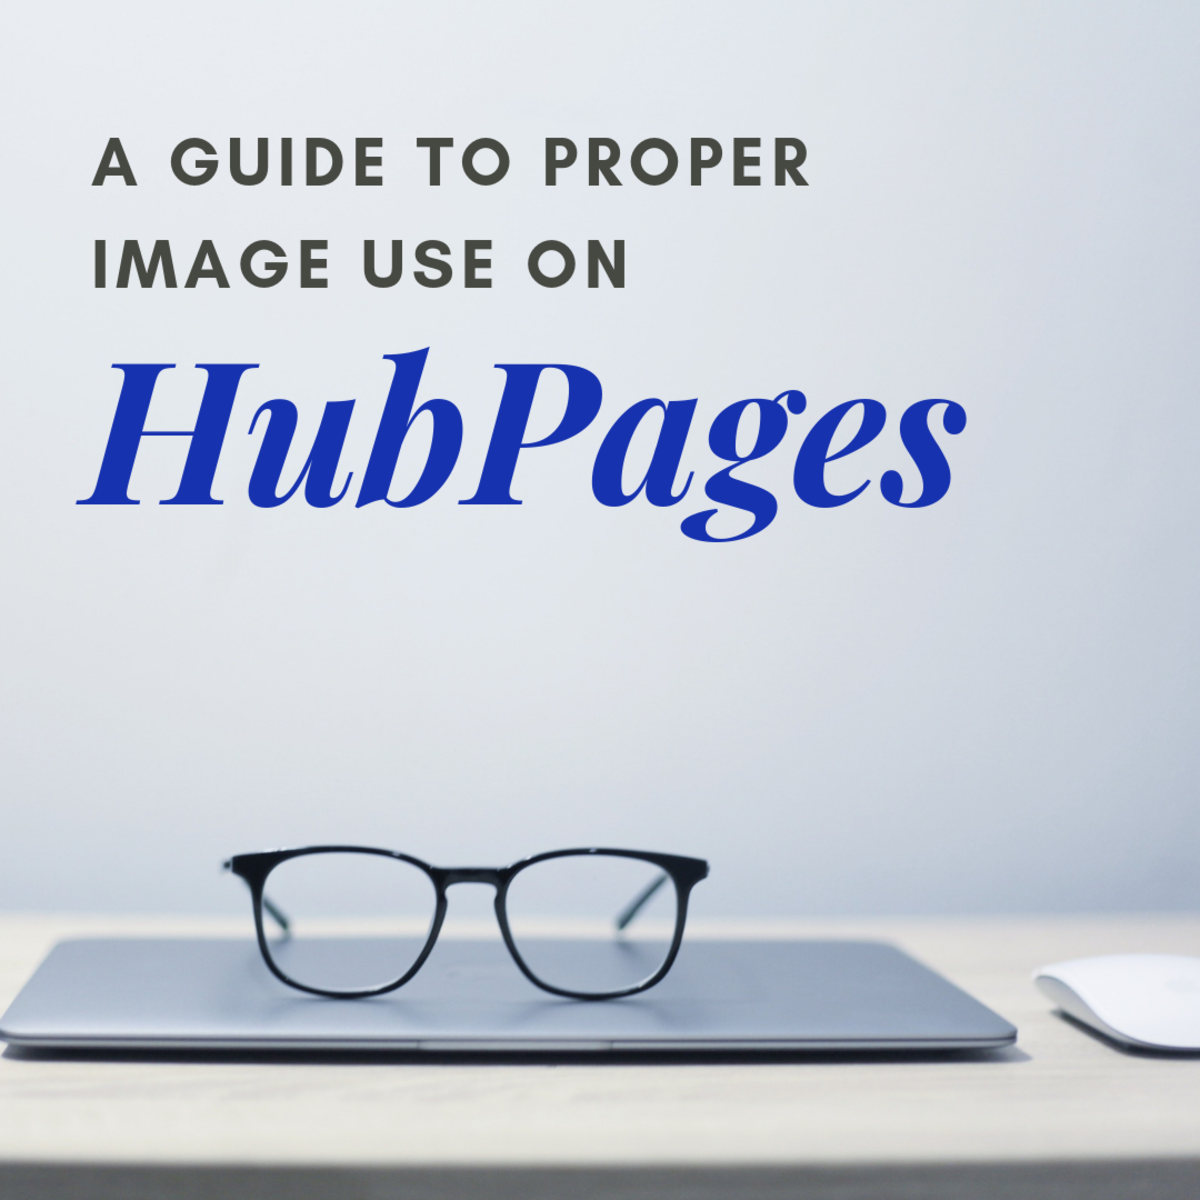 A Guide to Proper Image Use on HubPages